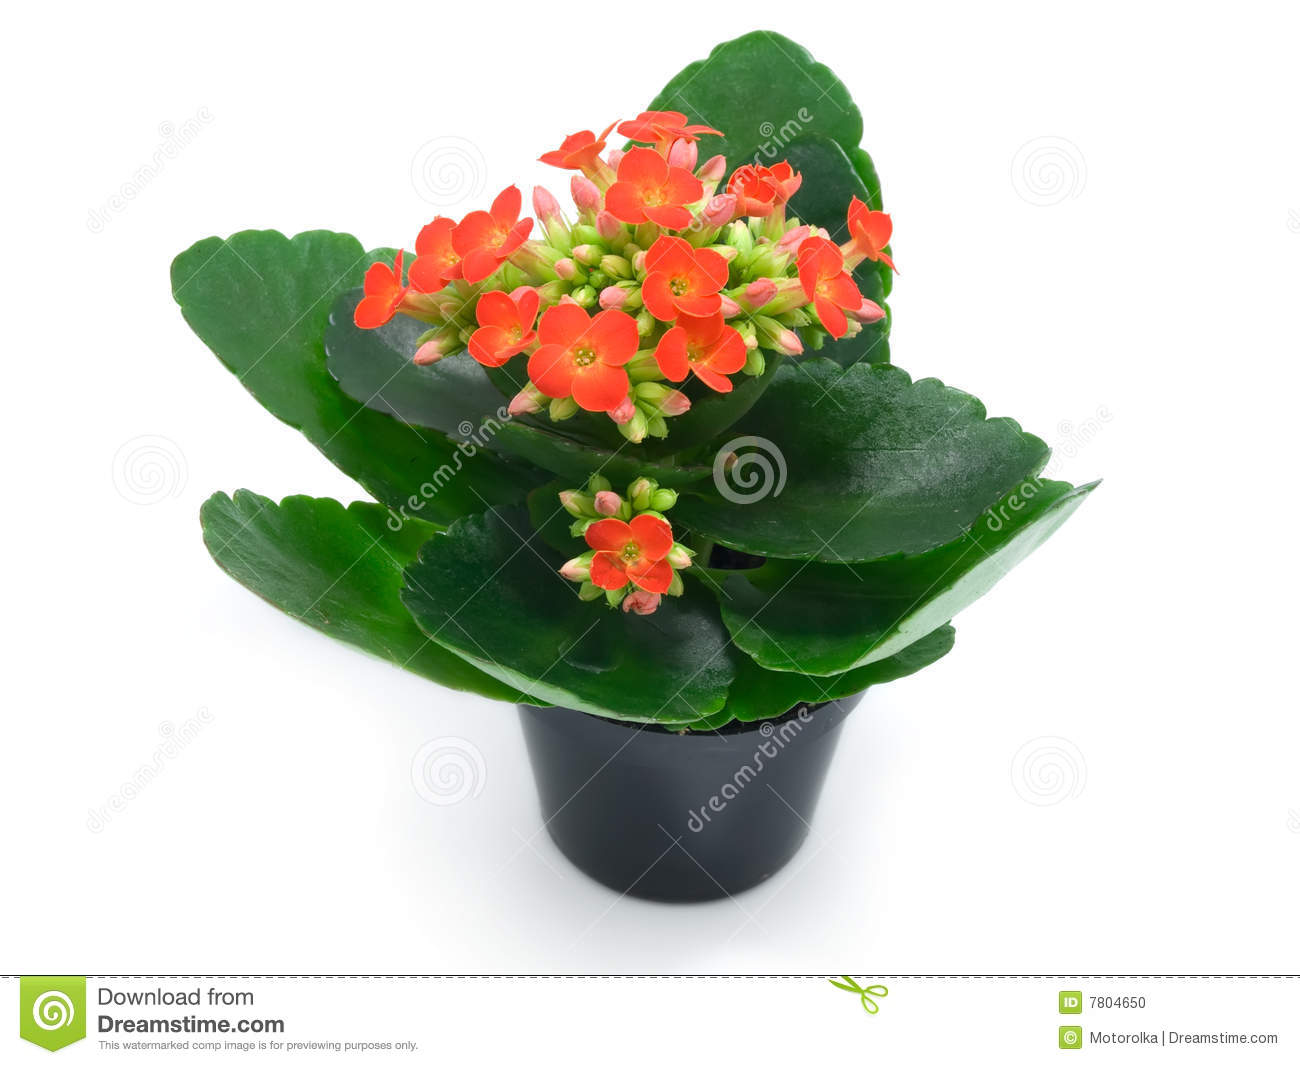 Small Household Plants Green Houseplants With Red Flowers Stock Photo Image